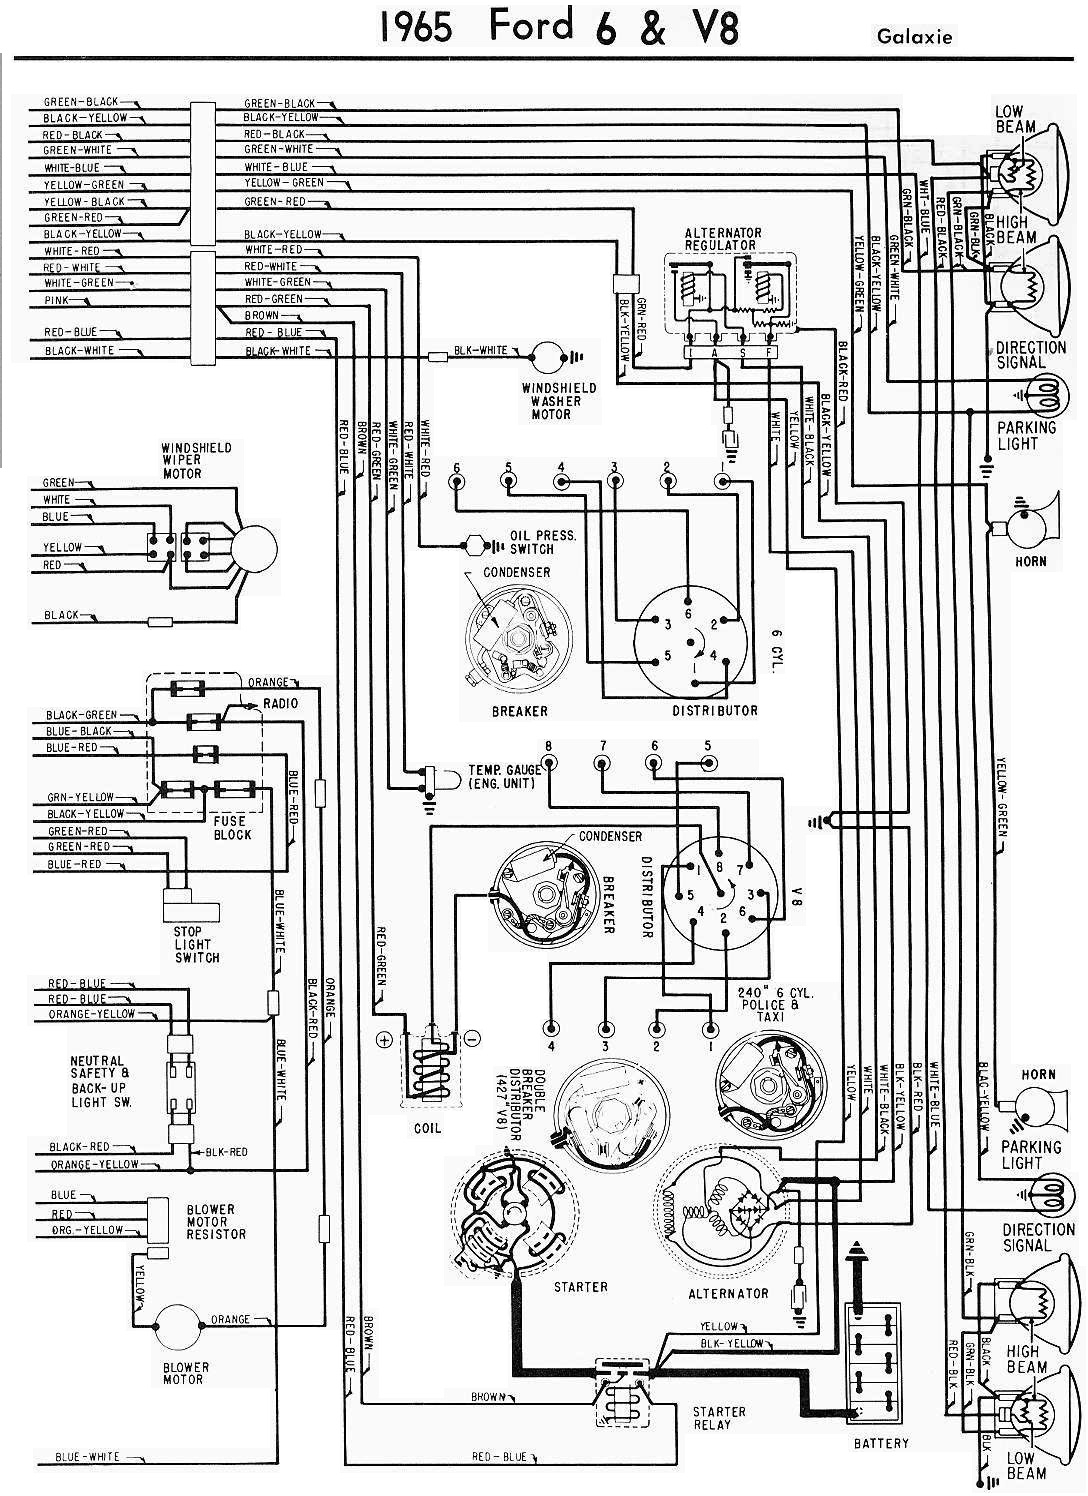 1965 ford galaxie wiring diagram 1965 ford galaxie complete electrical wiring diagram part